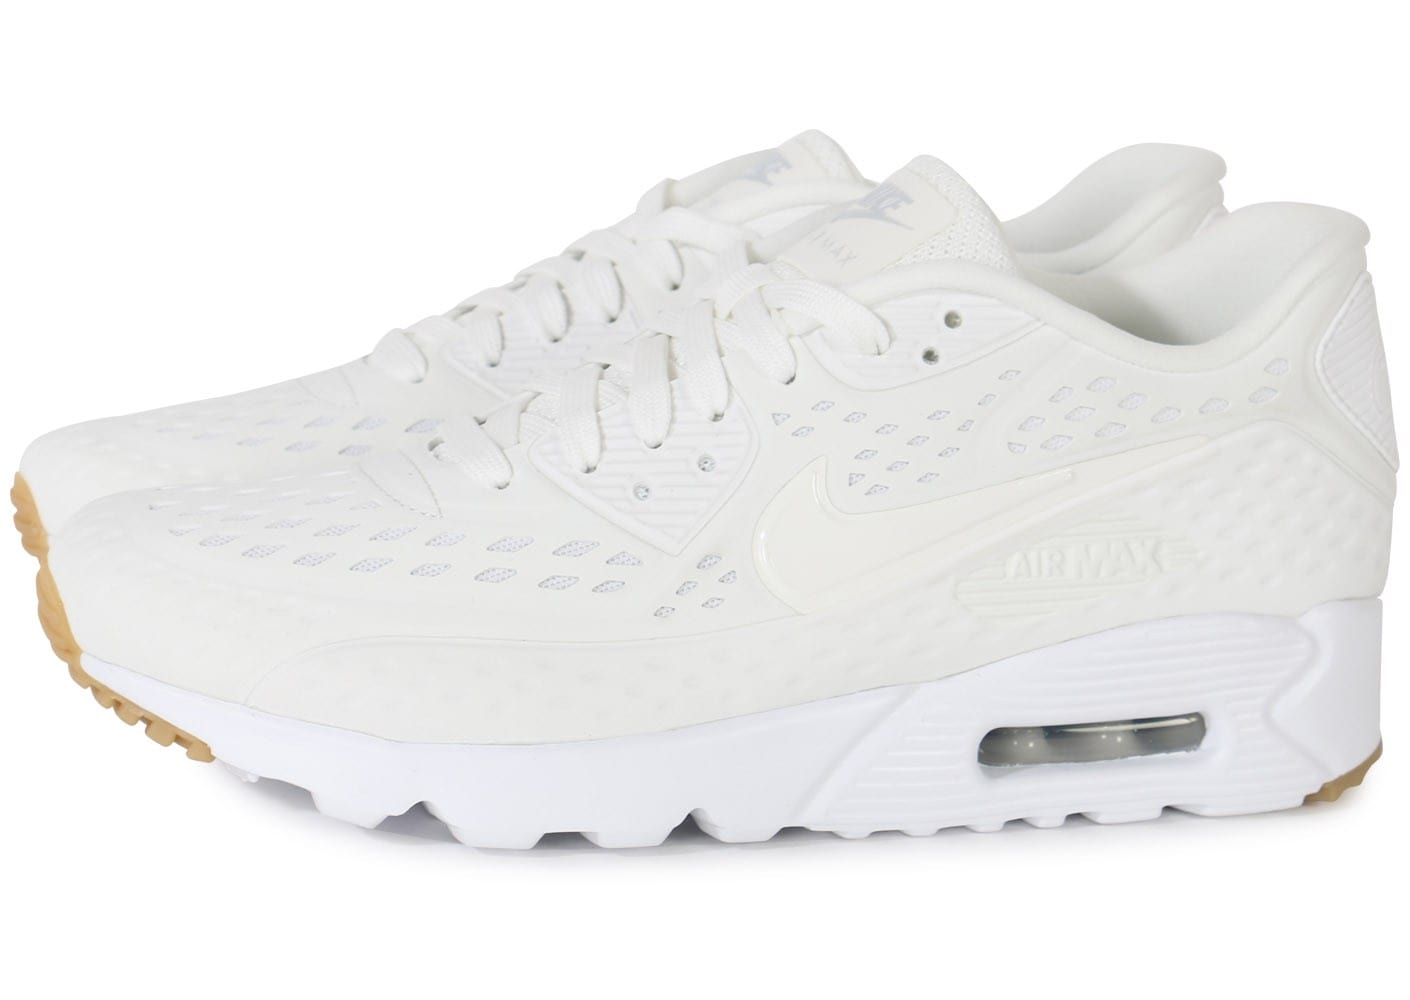 Nike Air Max 90 Ultra Br White Chaussures Baskets homme